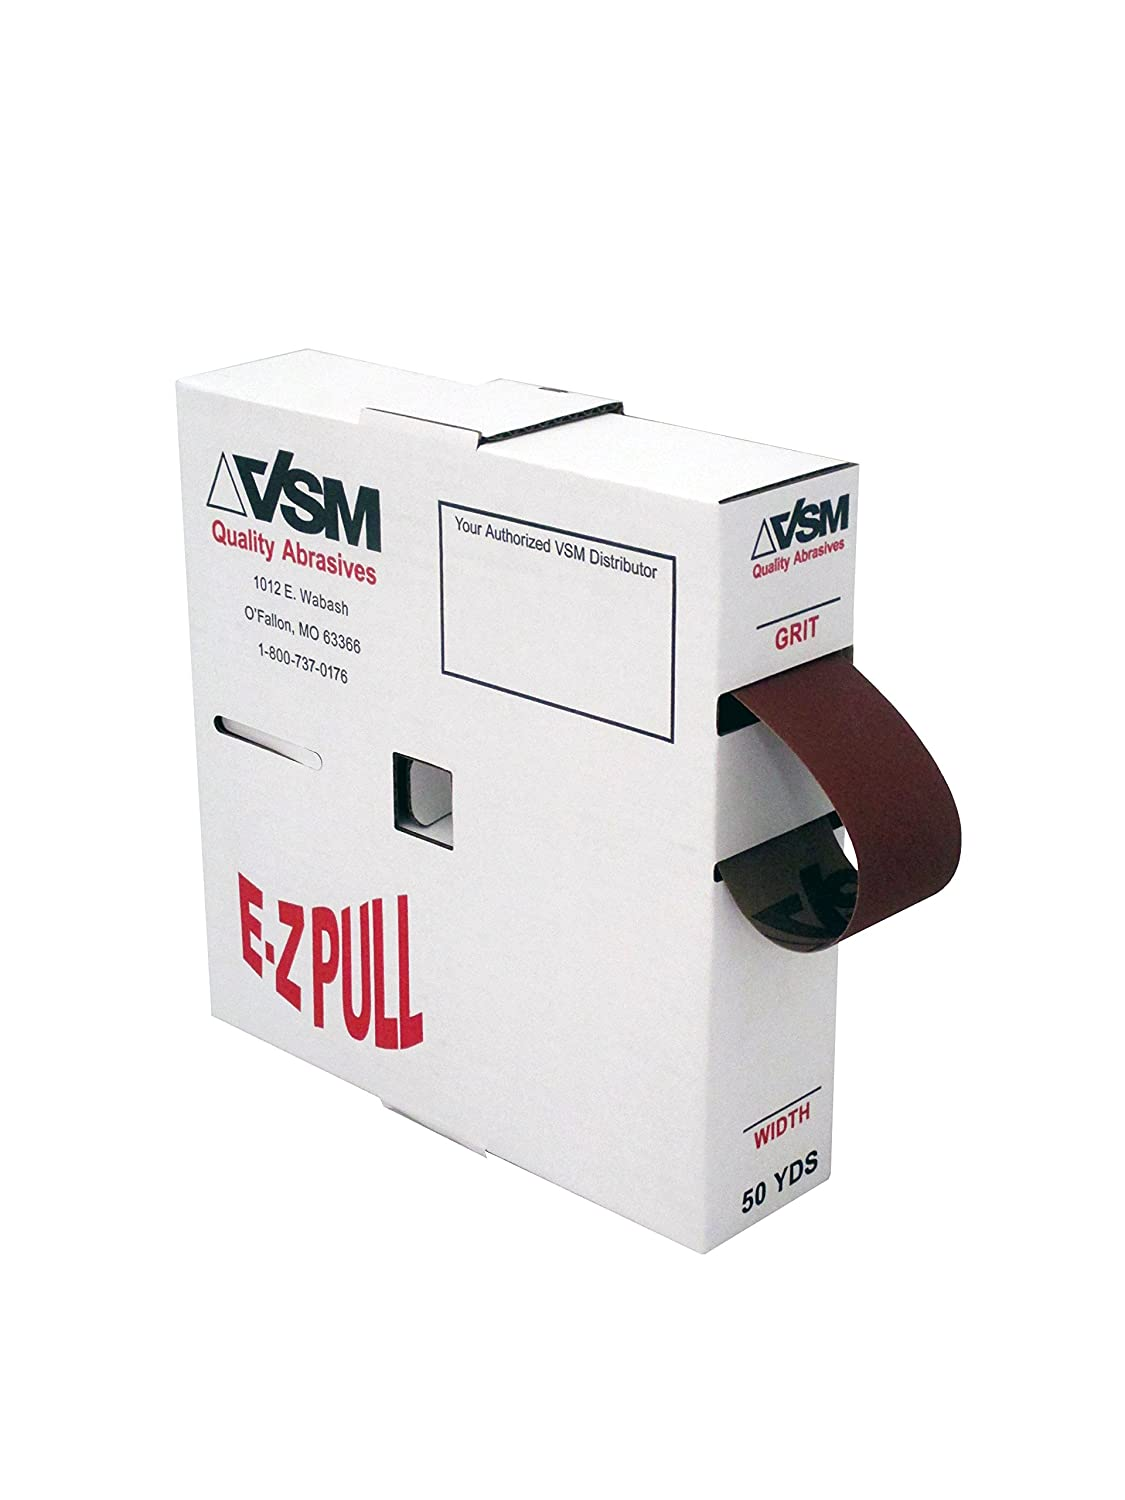 Roll Roll VSM Abrasives Co. VSM 314419 Abrasives Cloth 120 Grit 2 x 50 yd 2 x 50 yd